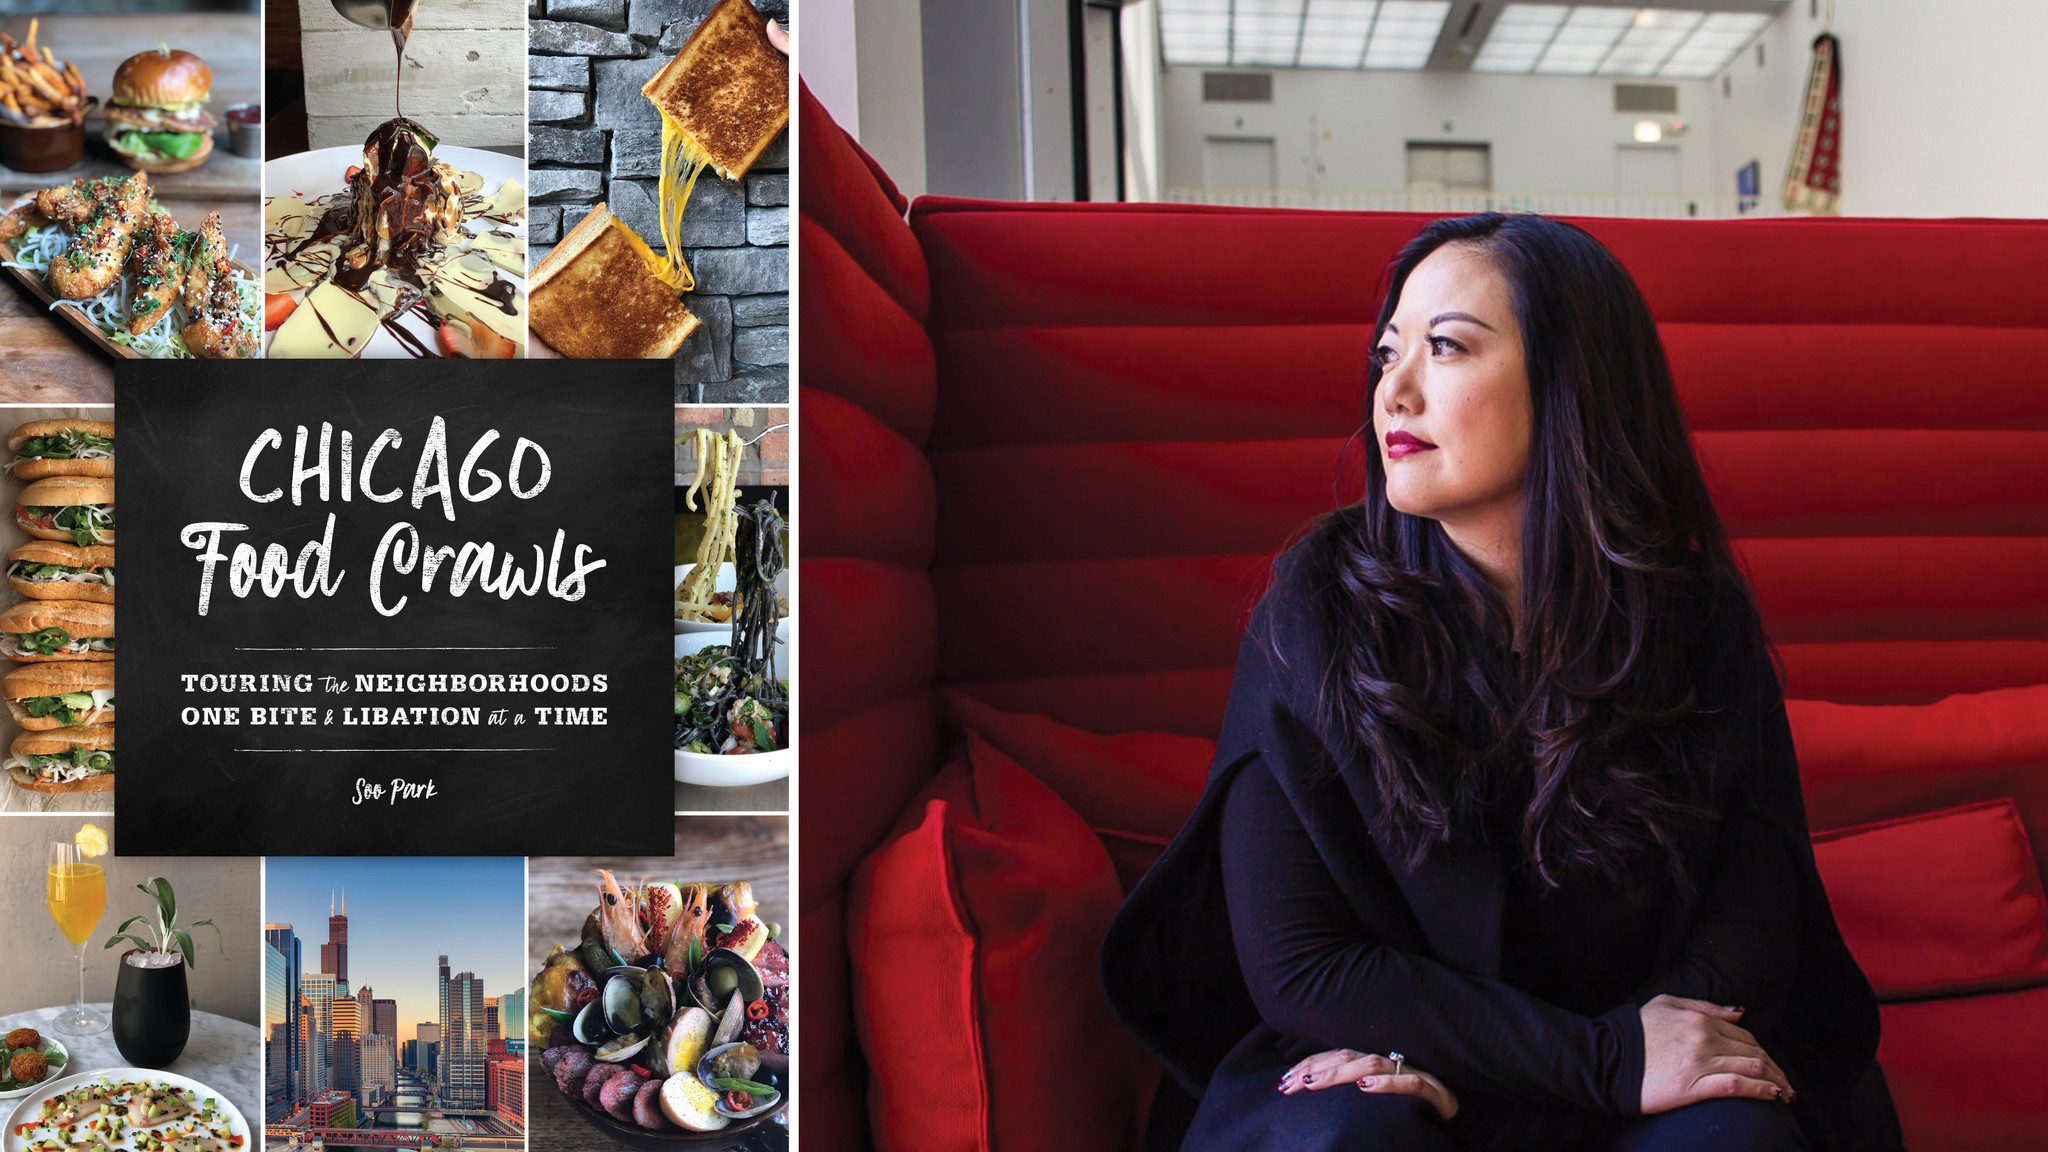 5 things you didn't know about Chicago from new book 'Chicago Food Crawls'